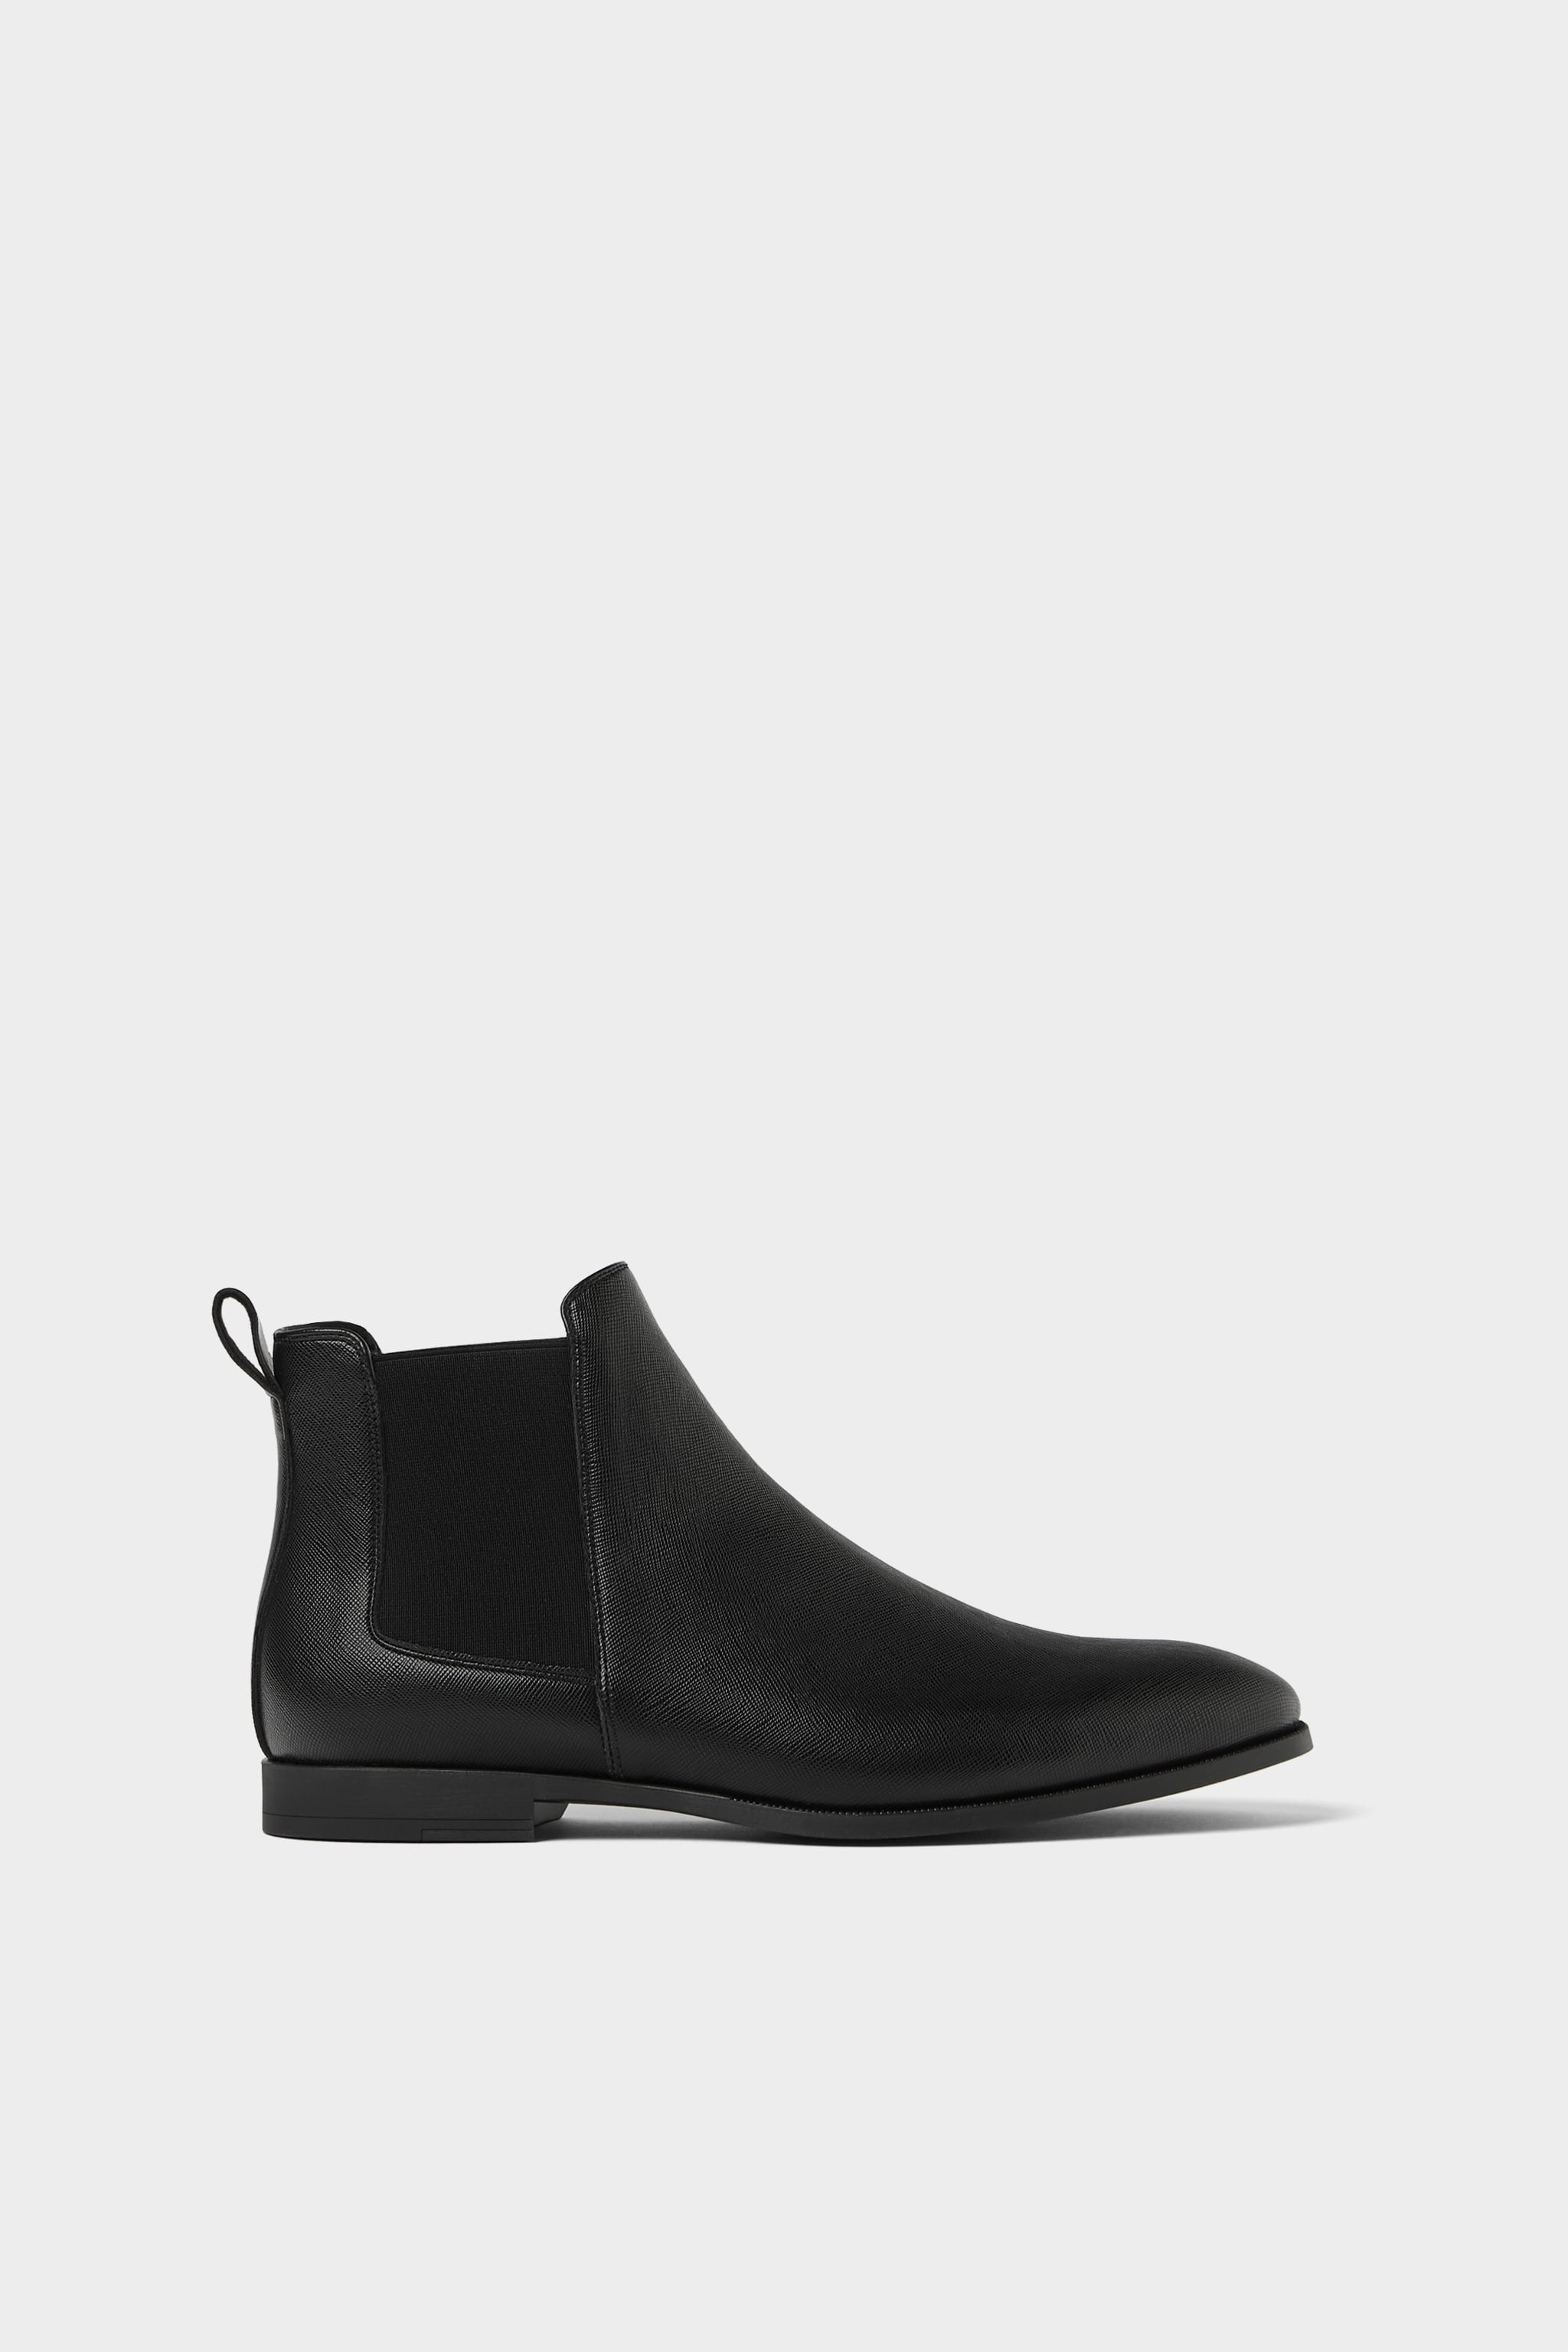 8f00a6d6a9 Zara BLACK EMBOSSED ANKLE BOOTS